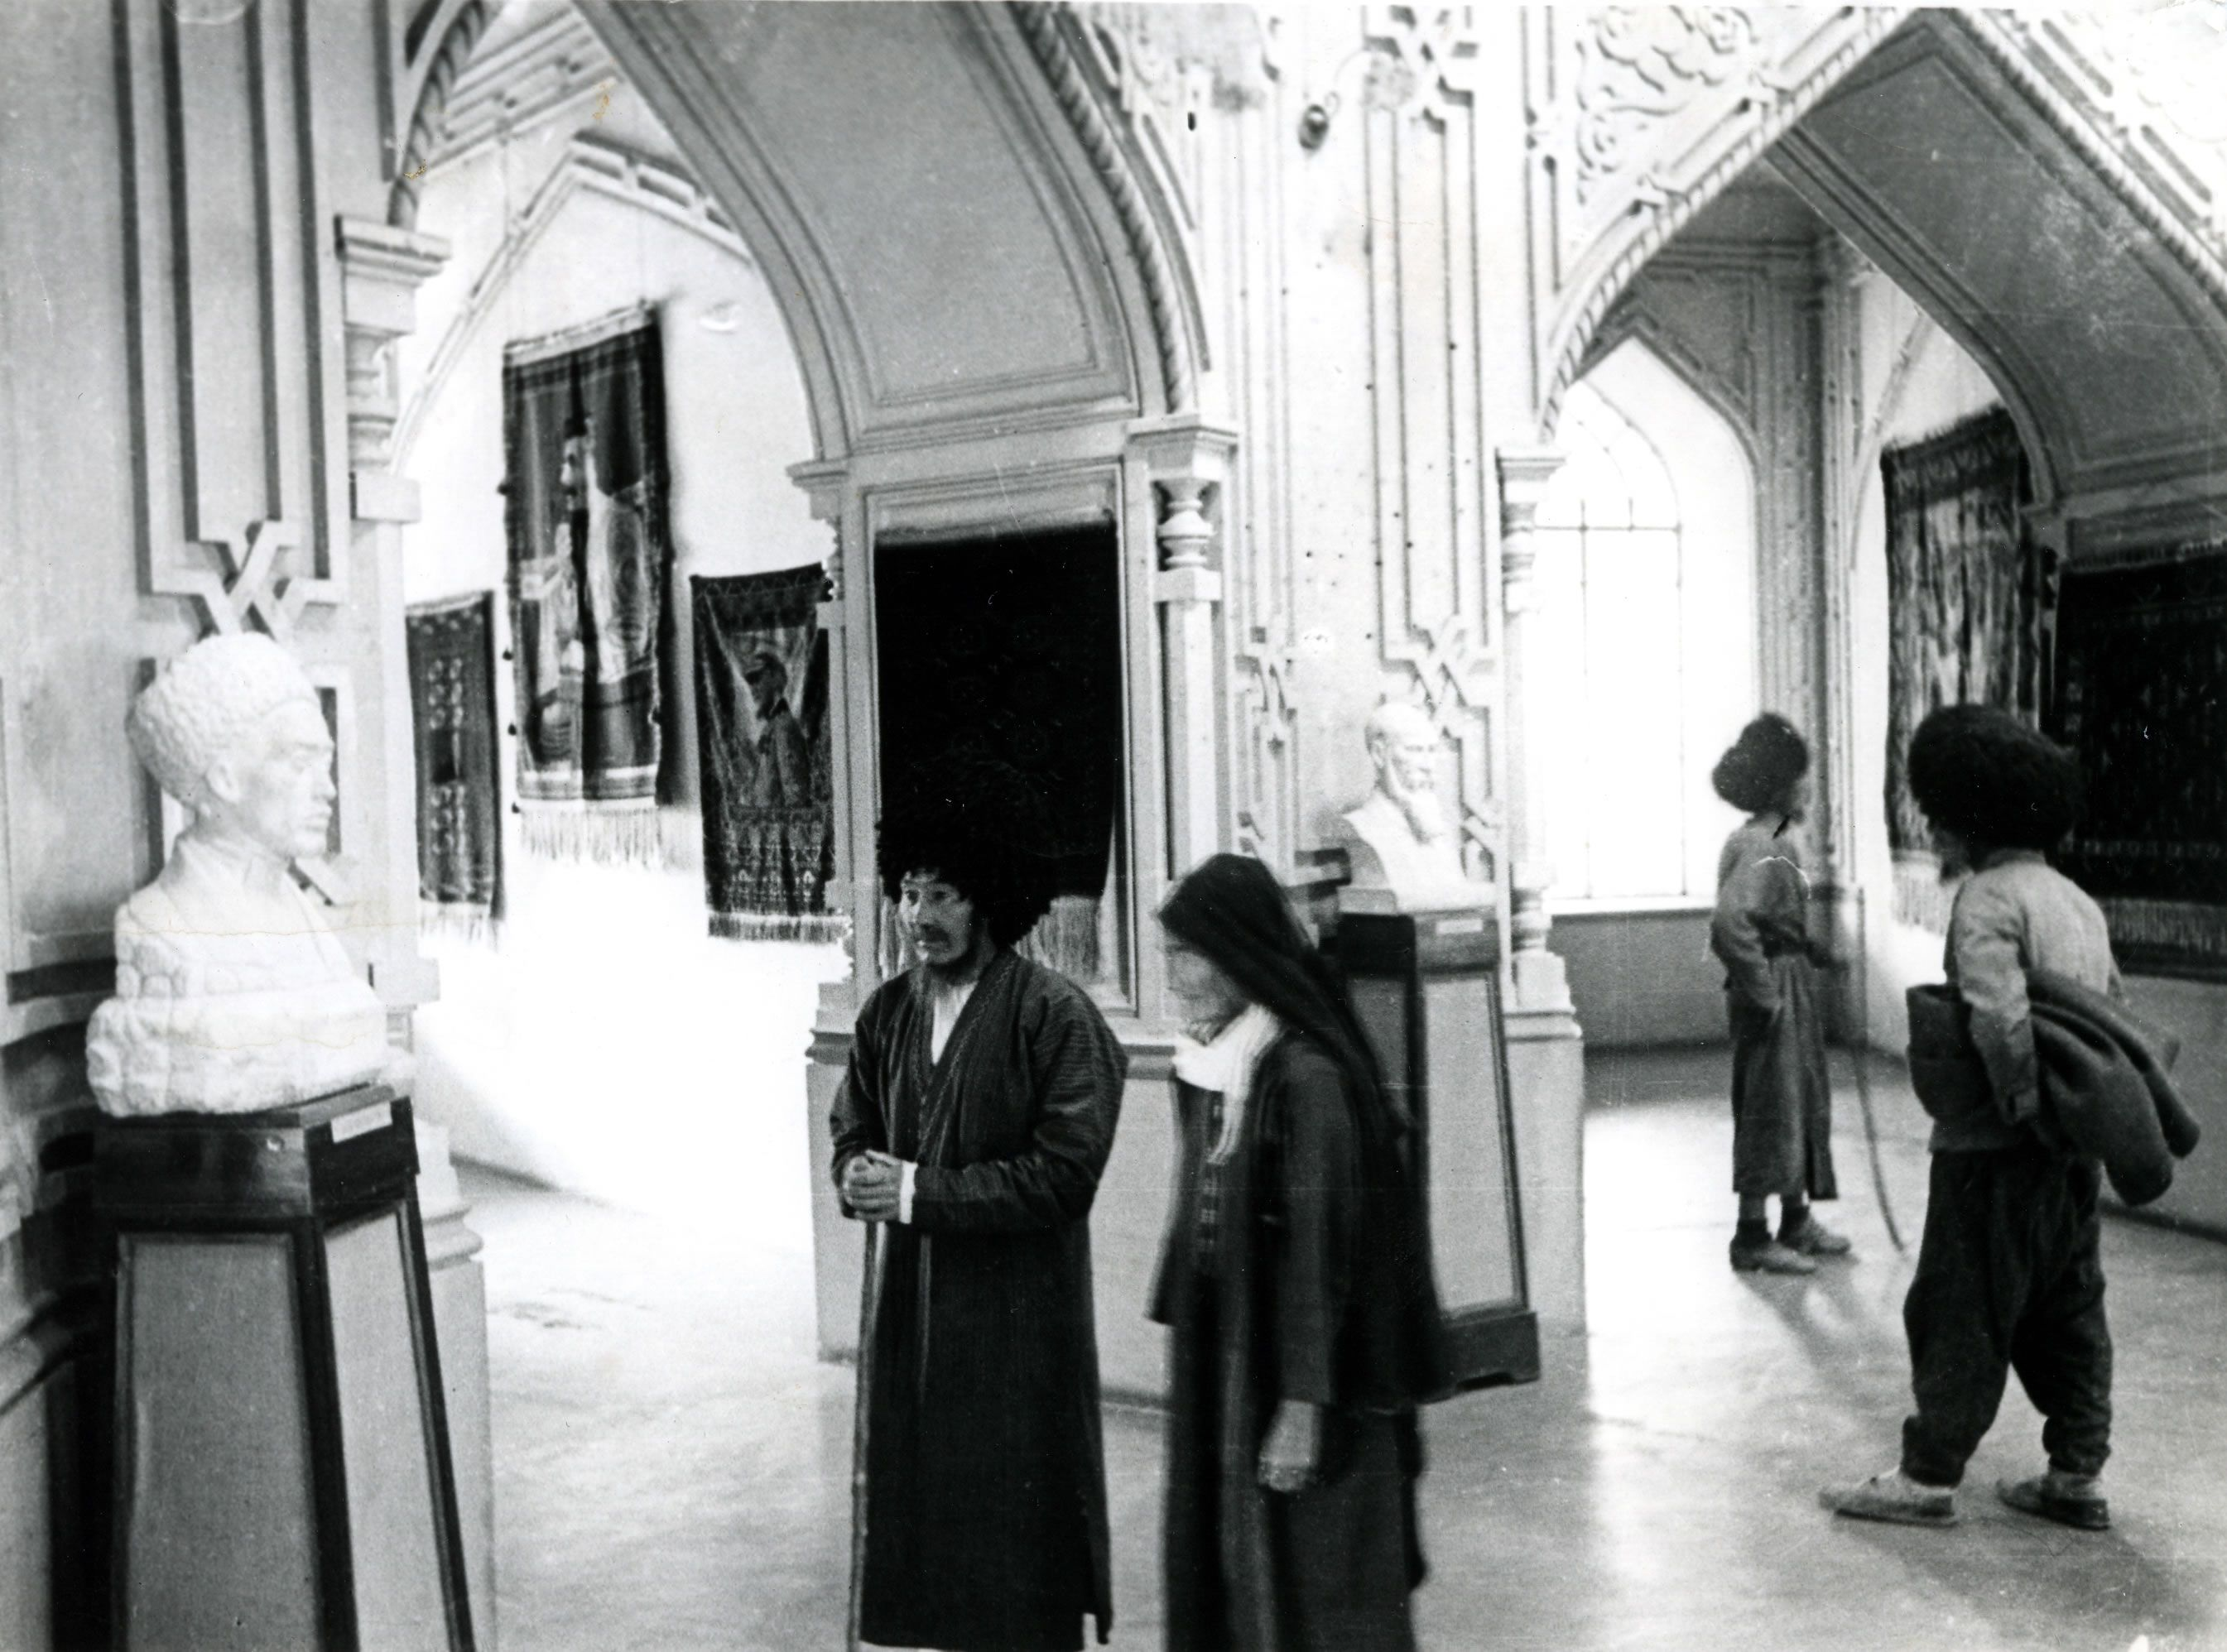 The House of Worship as an art museum.